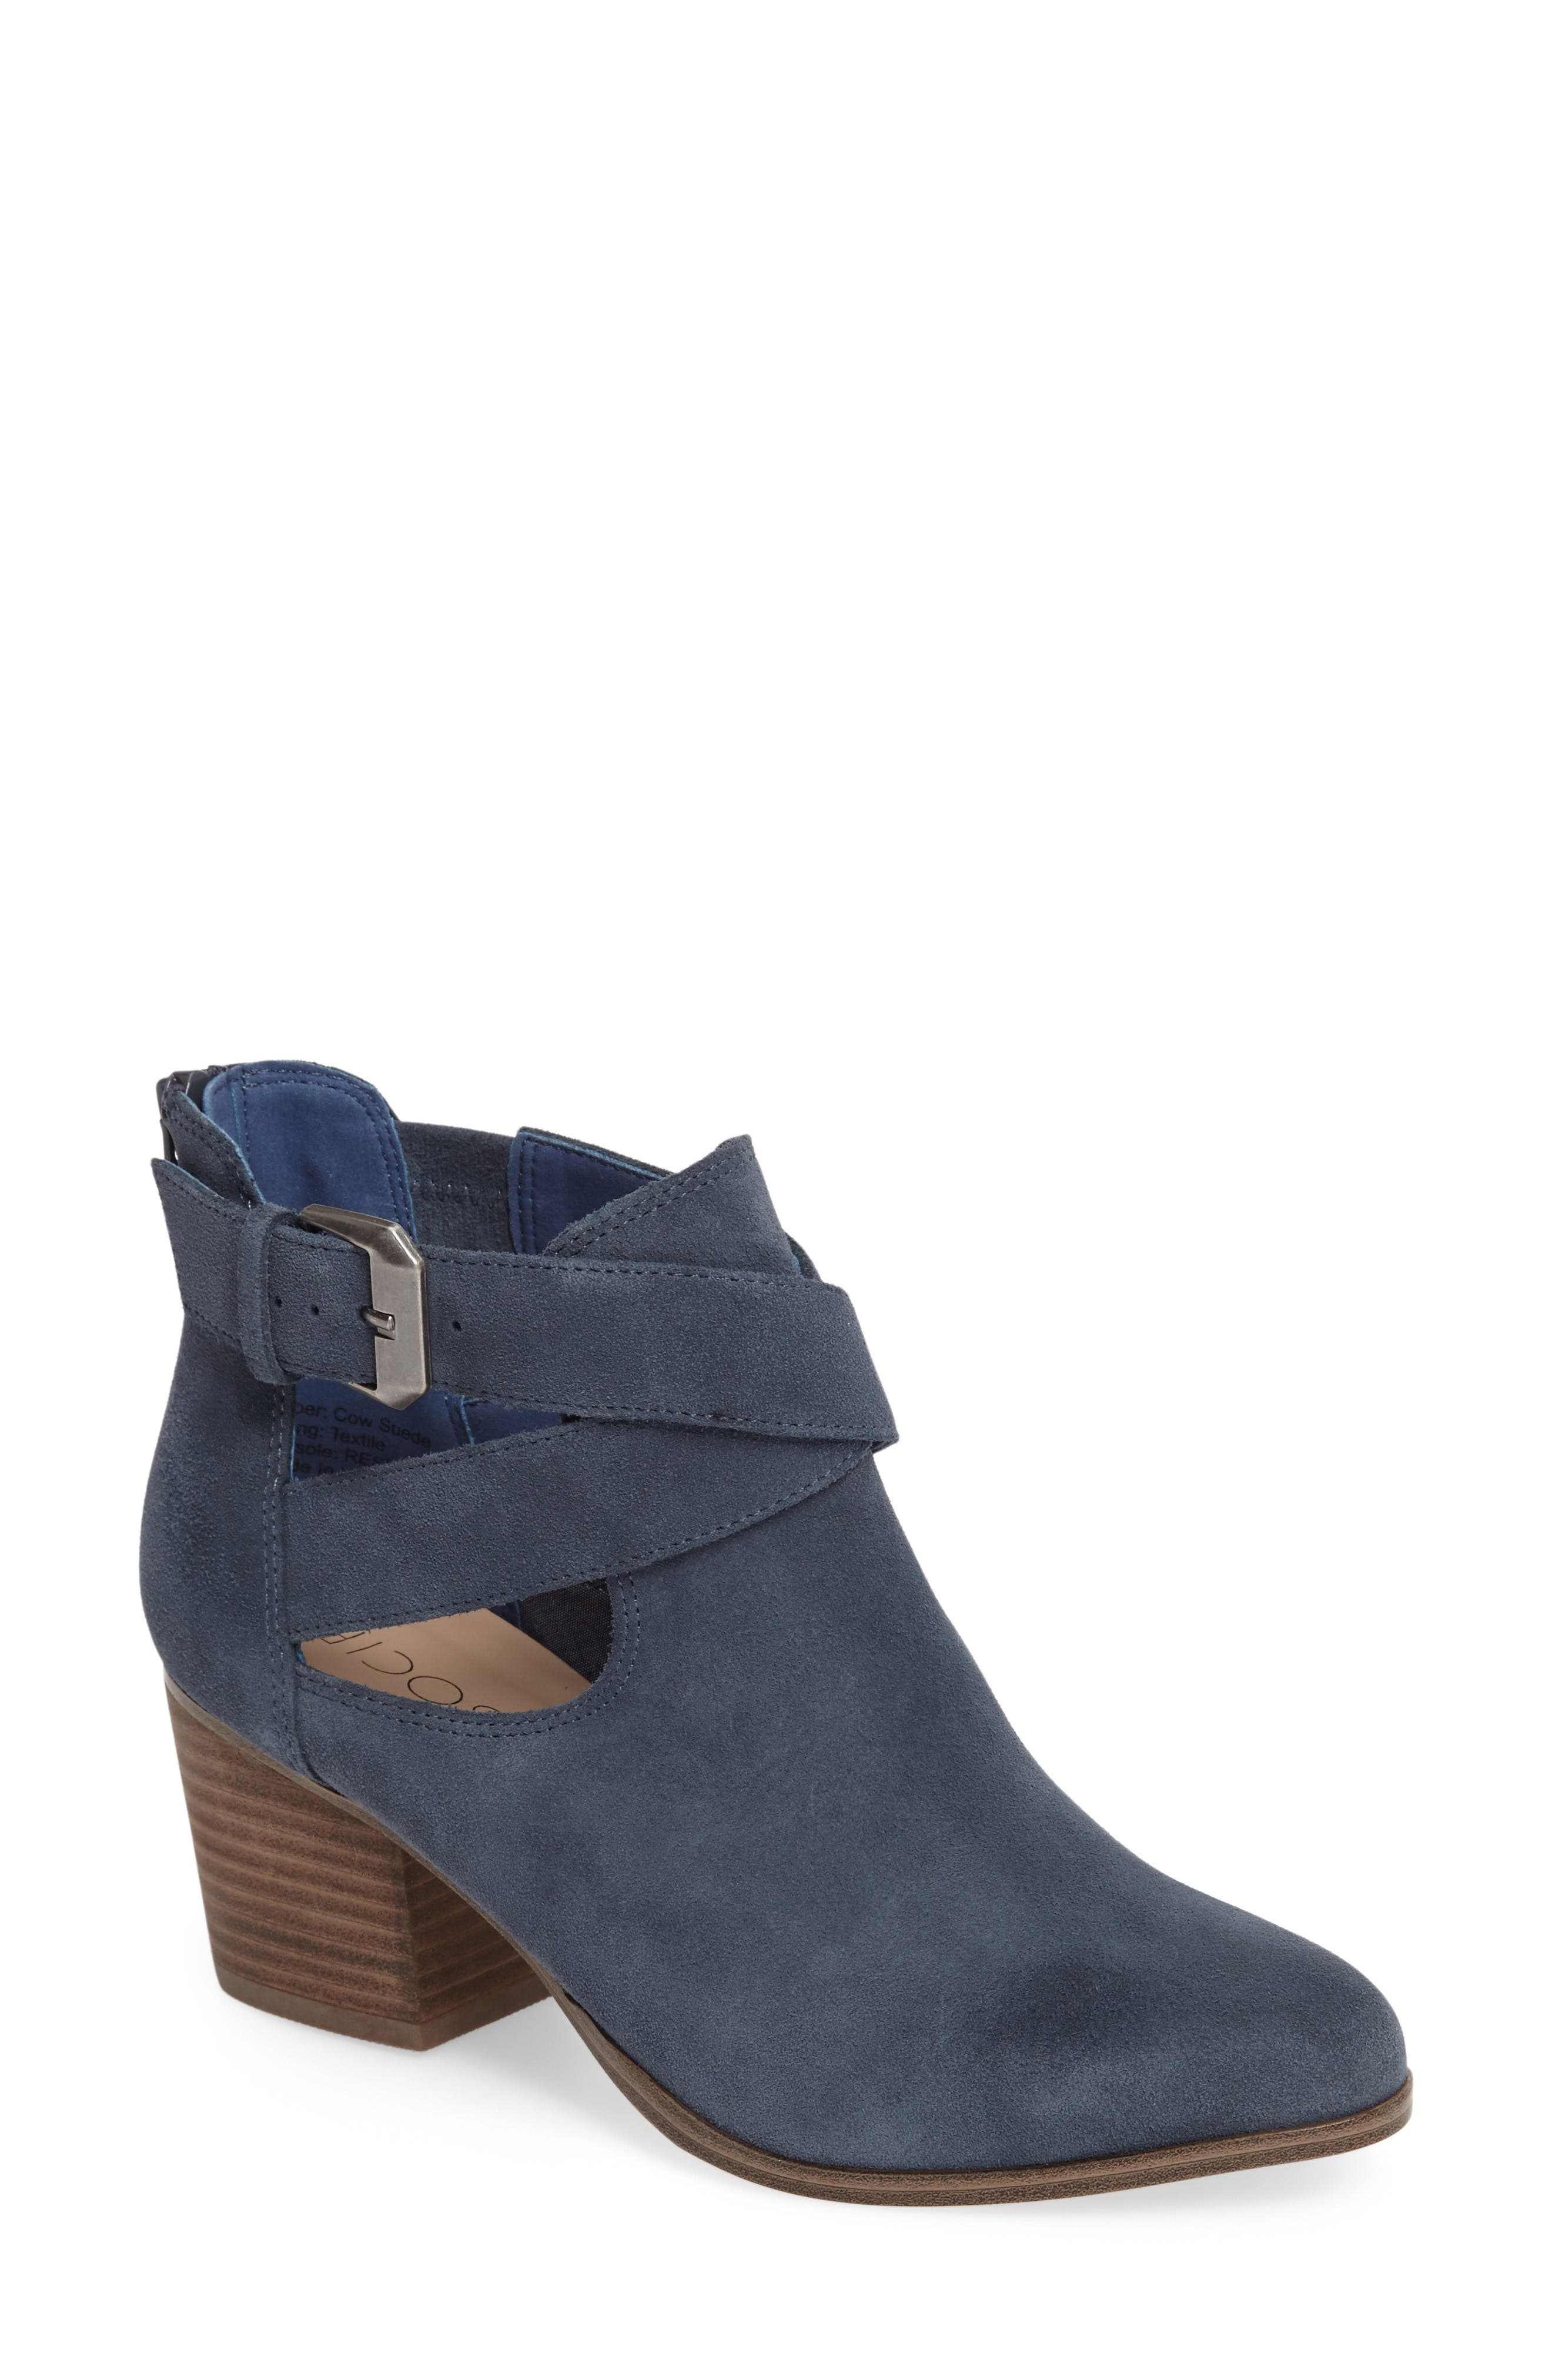 Alternate Image 1 Selected - Sole Society Azure Bootie (Women)